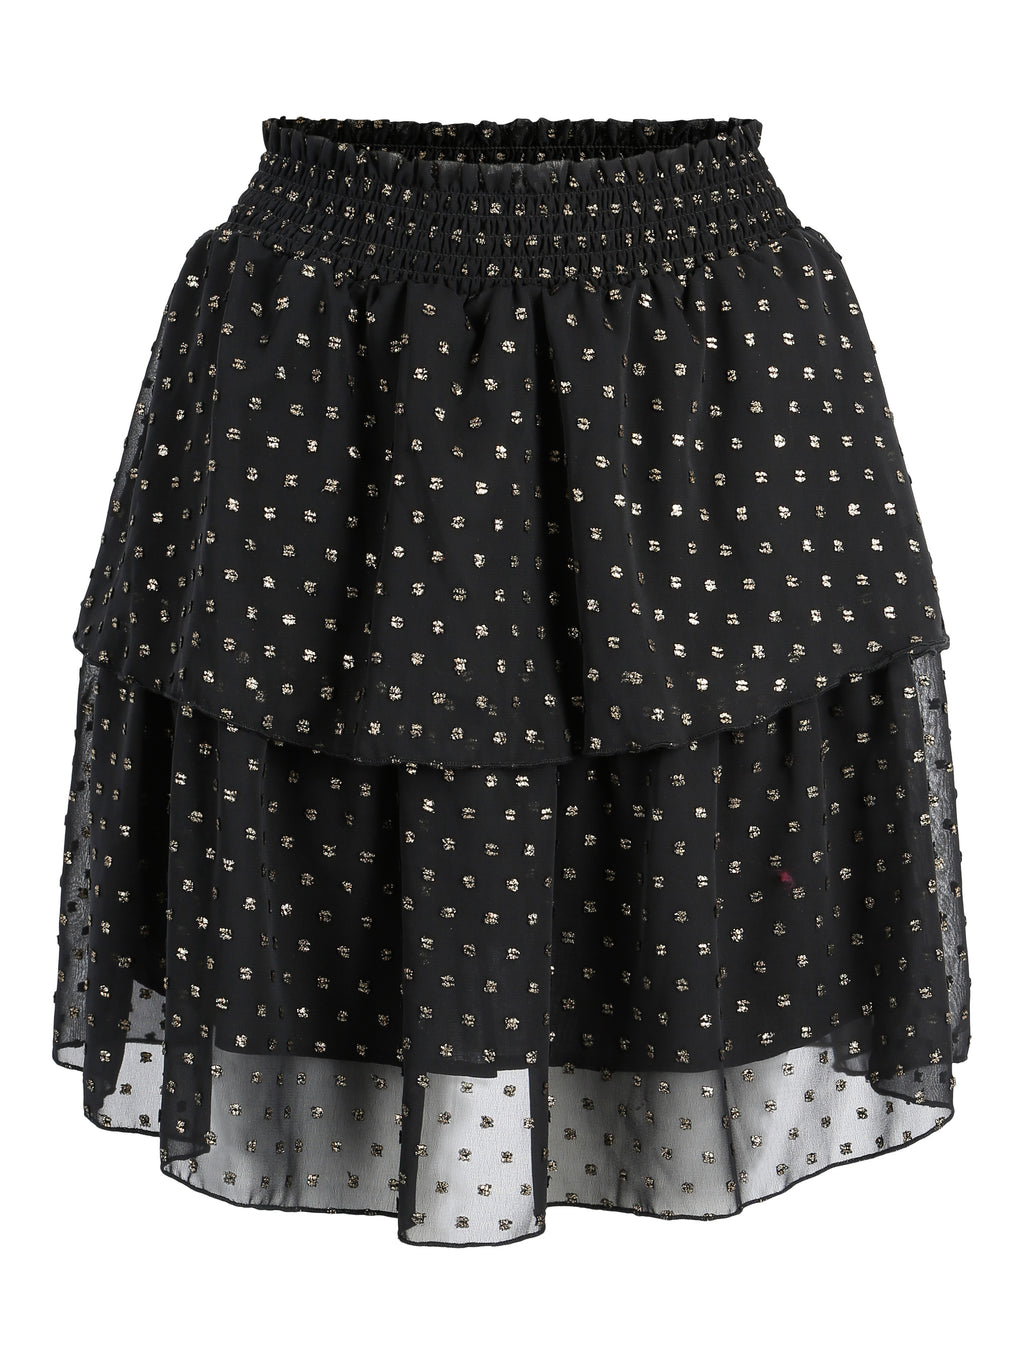 Beso Skirt Black Gold